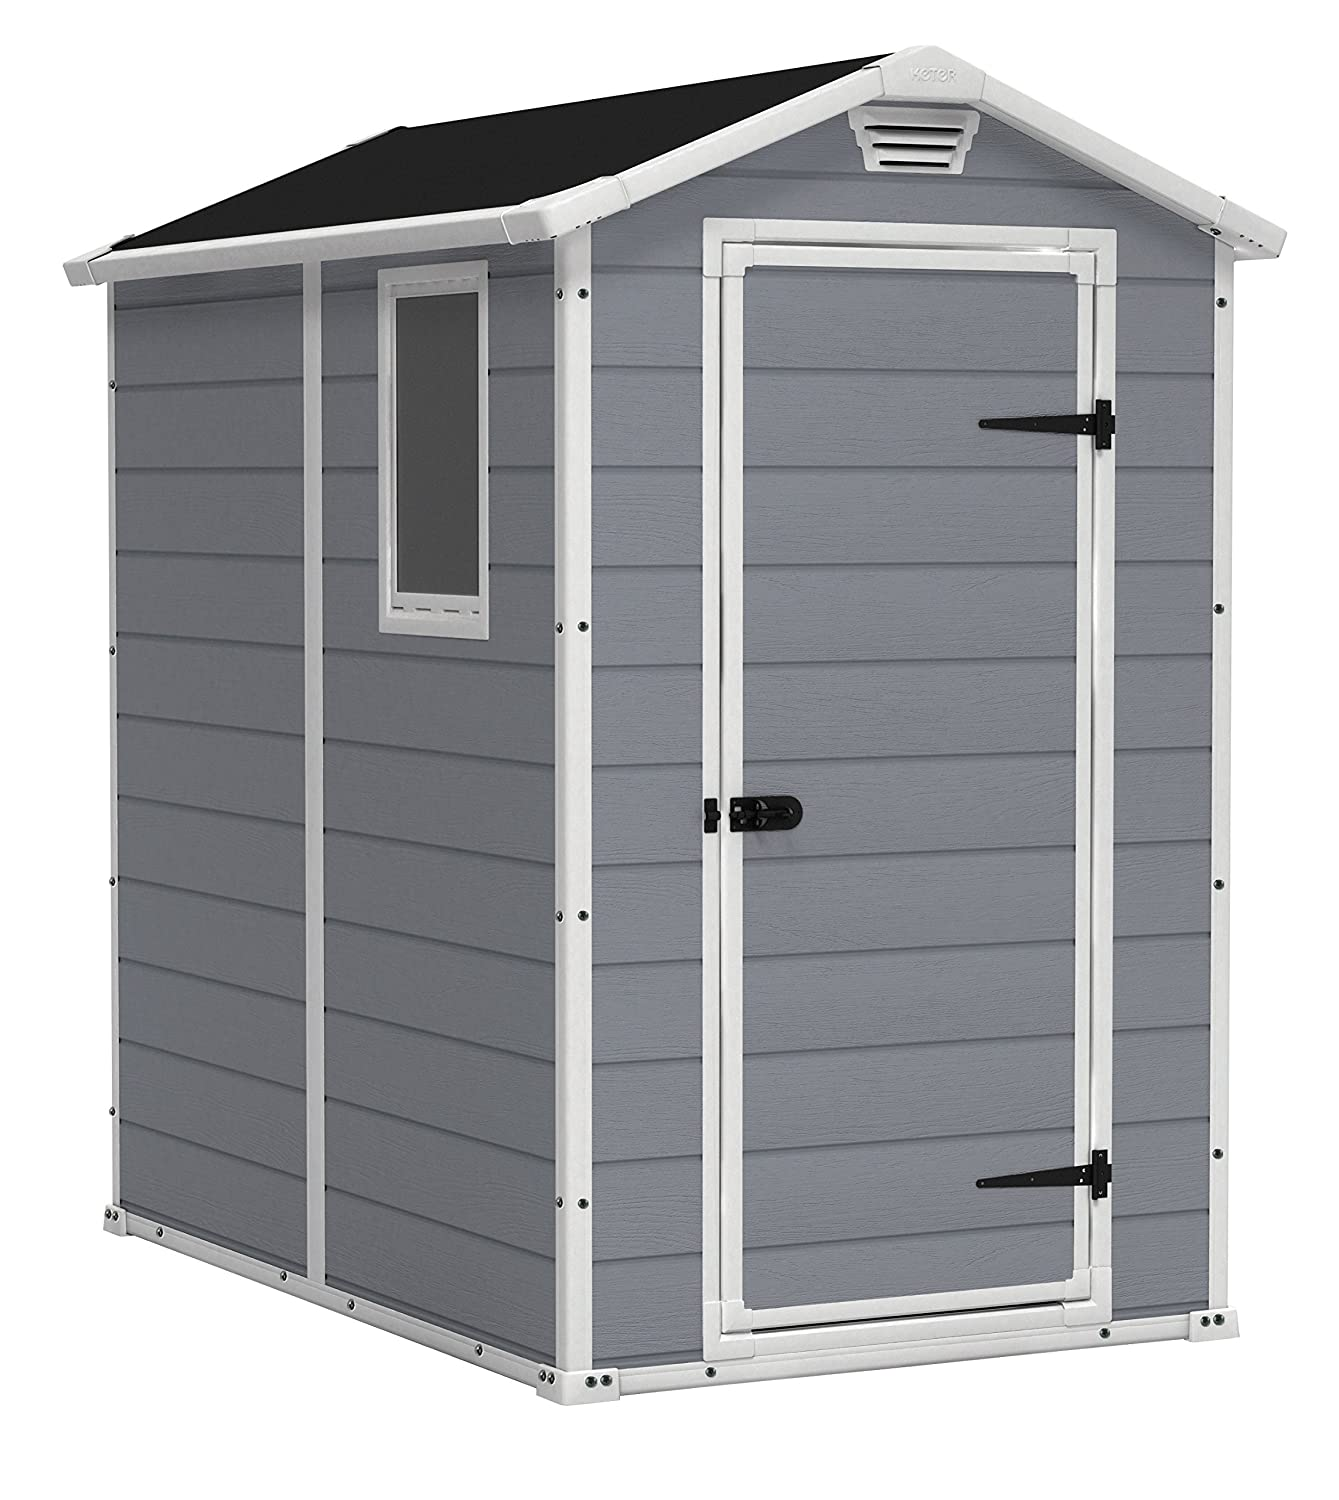 Keter Manor Large 4 x 6 ft. Resin Outdoor Backyard Garden Storage Shed